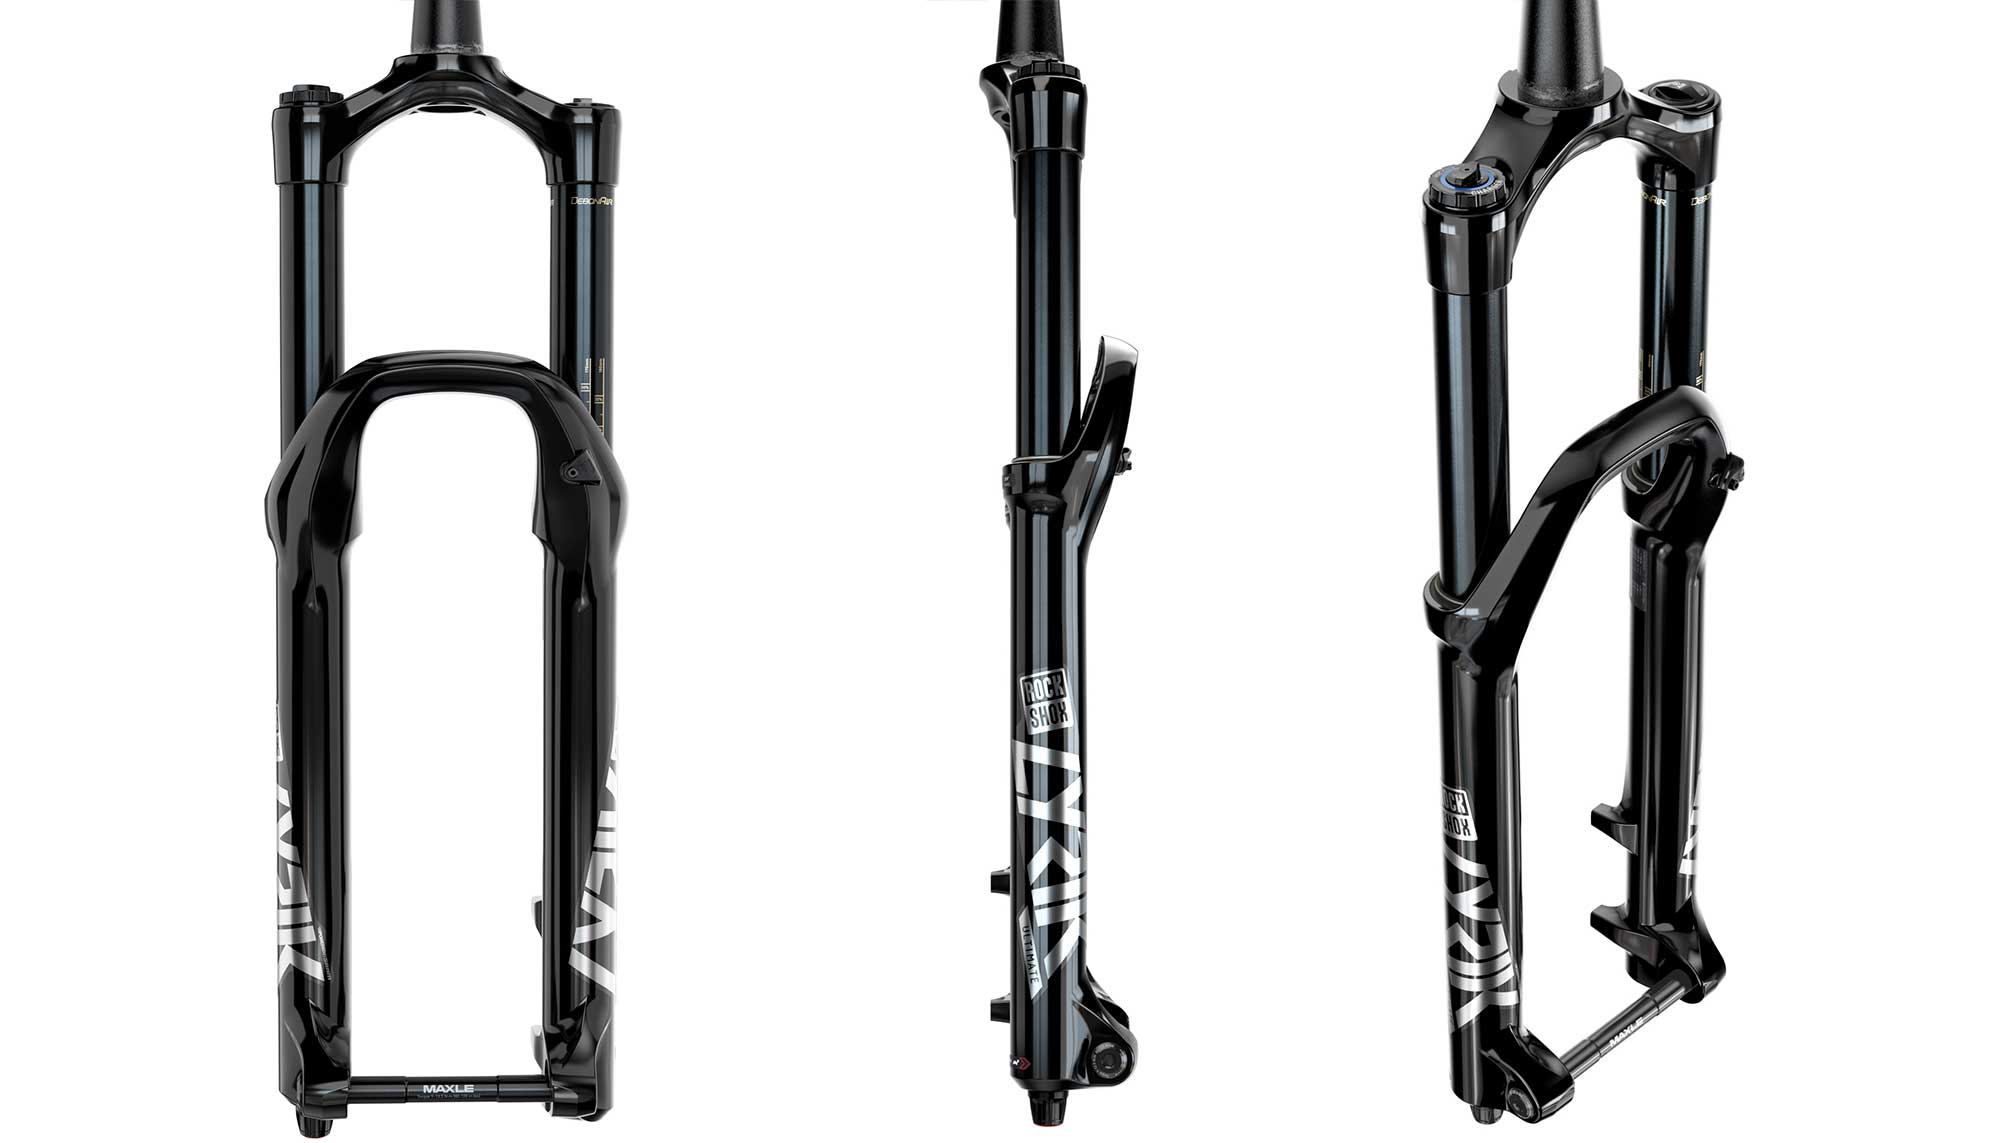 RockShox Lyric Ultimate